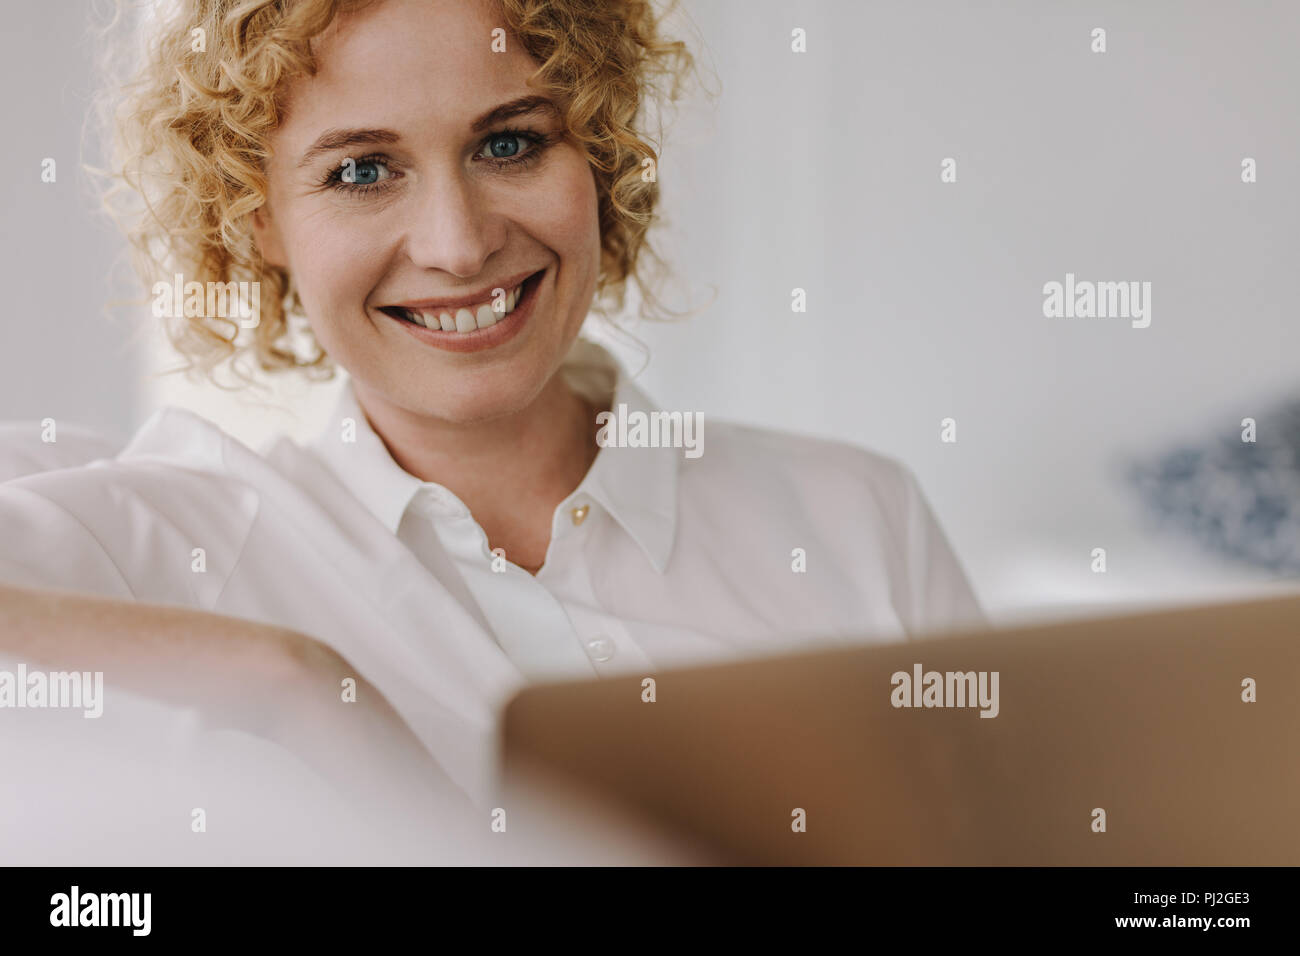 Portrait of a smiling businesswoman working on a laptop. Brown curly haired woman sitting at home working on laptop. - Stock Image